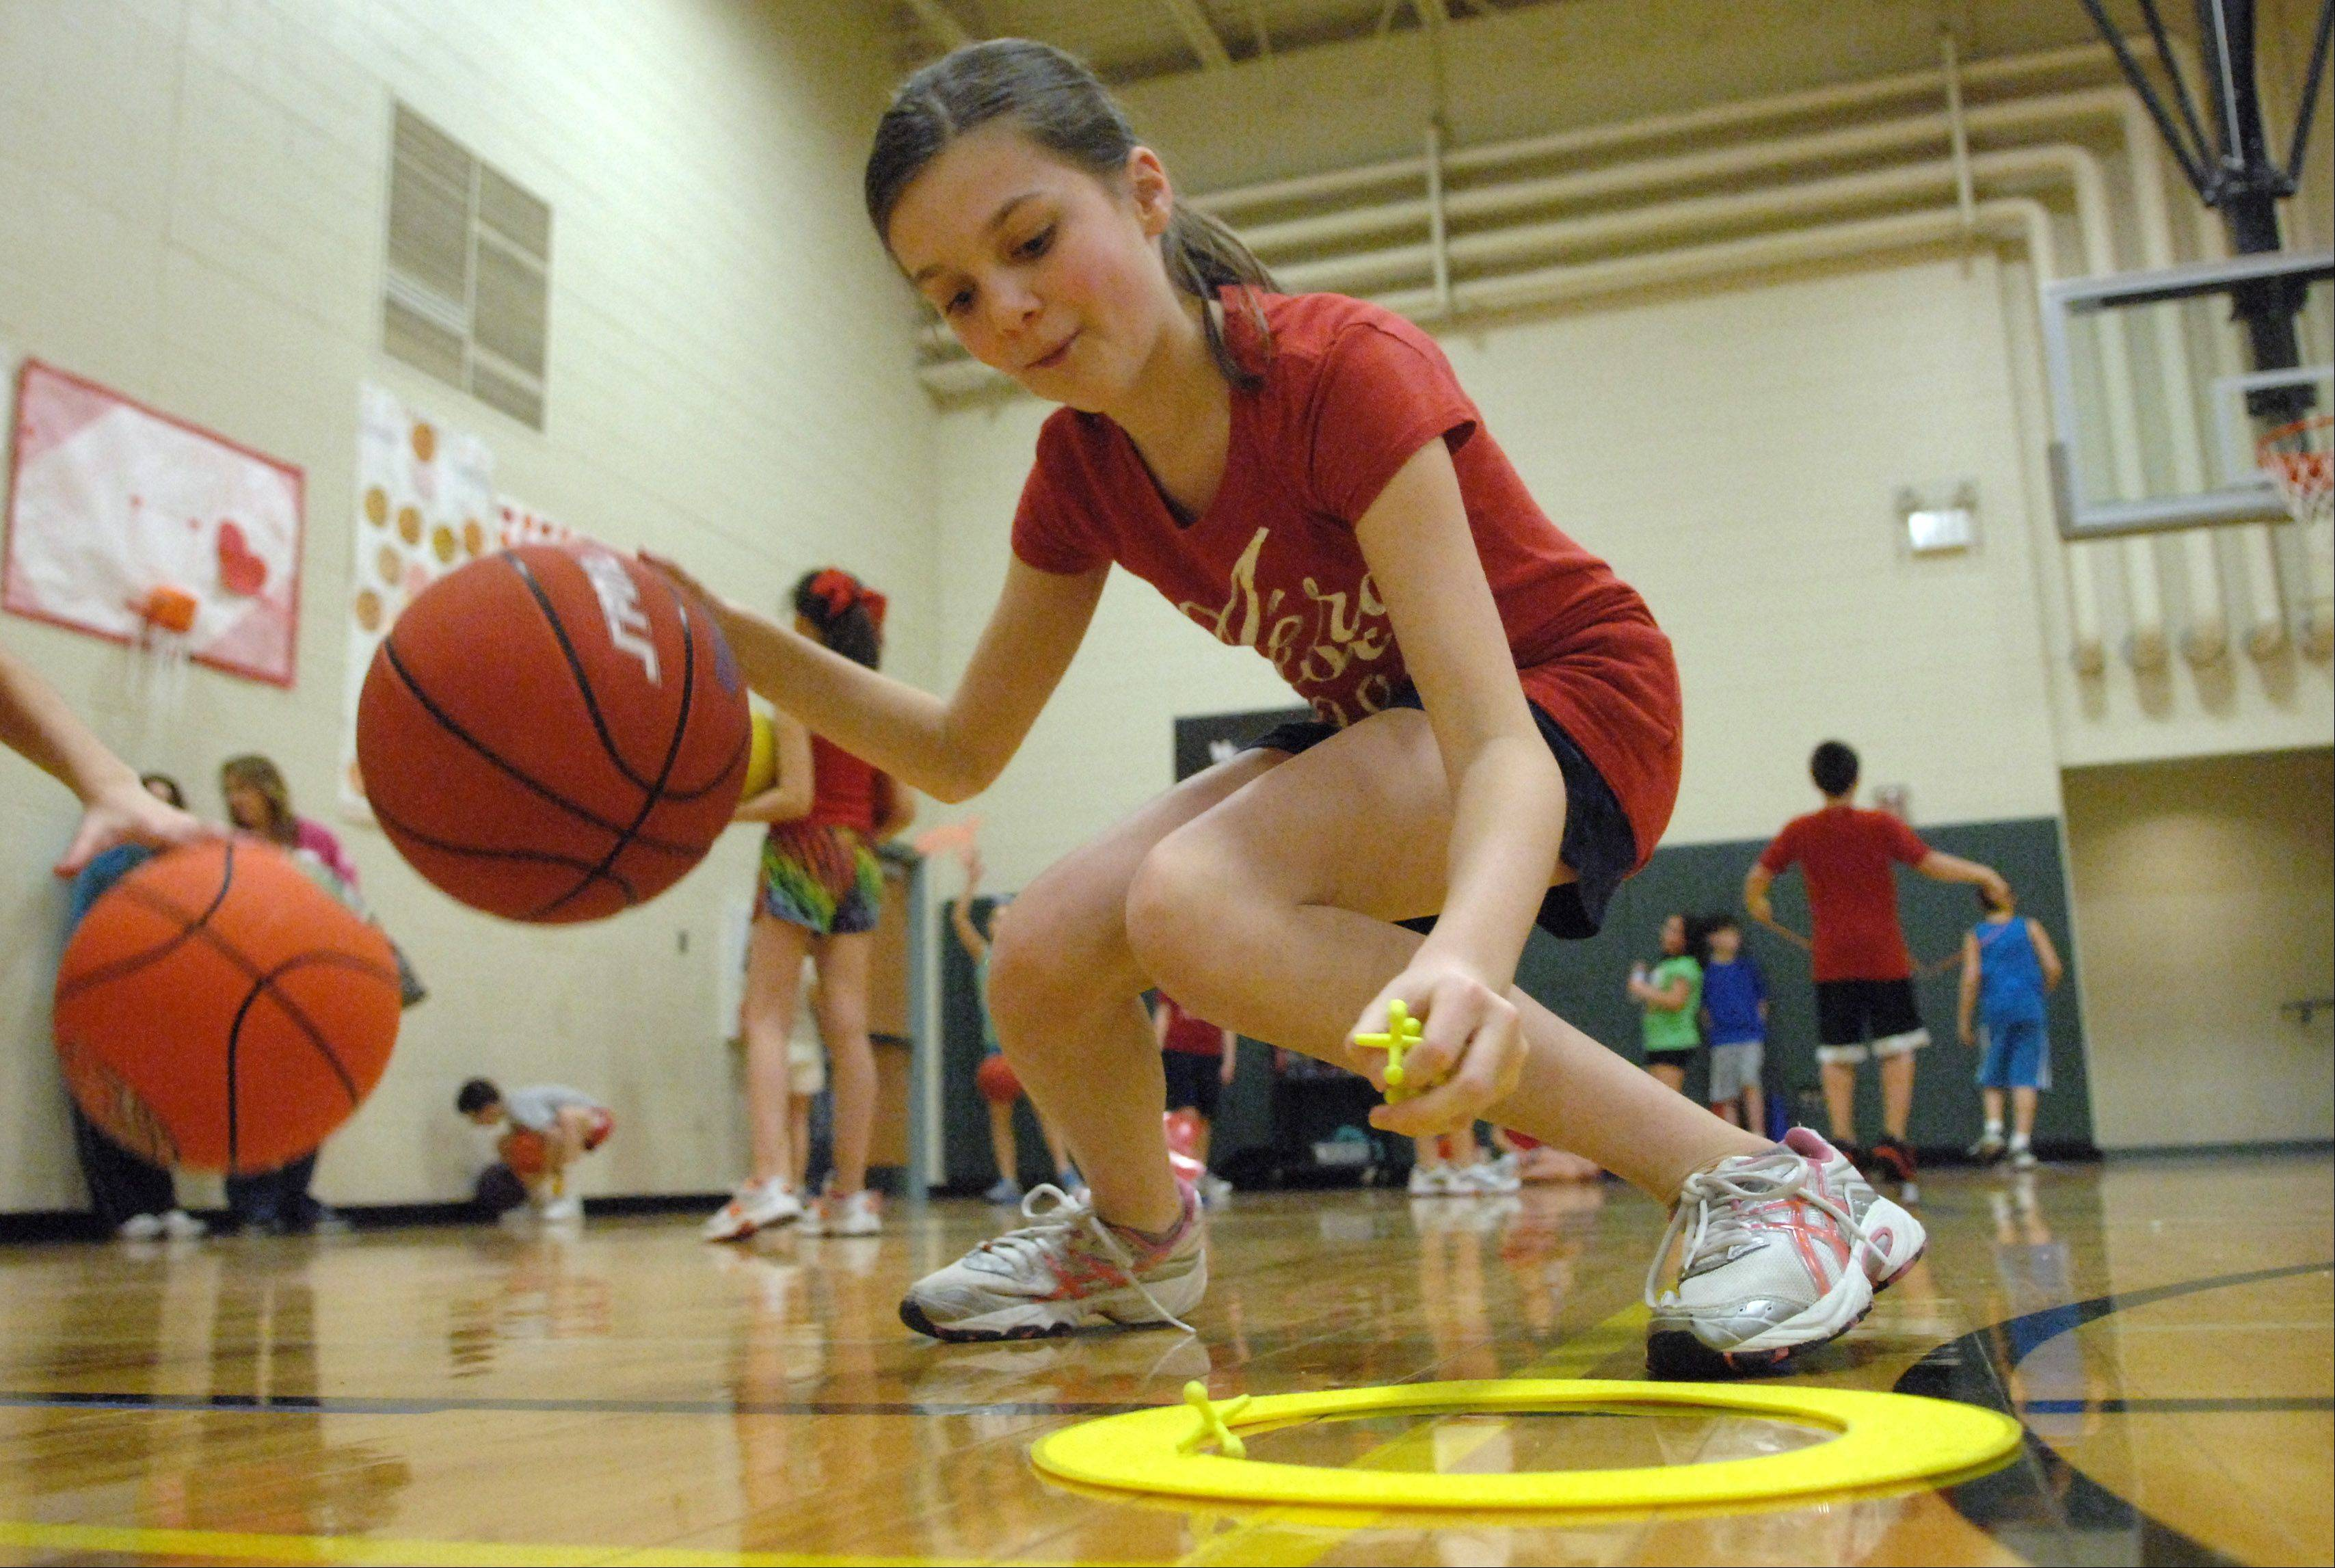 5th-grader Madison Overly has to dribble a basketball with one hand while scooping up jacks with the other as kids at Martin Elementary School in Lake in the Hills take part in Hoops for Hearts Thursday. Hoops For Heart is a national fundraising program that promotes physical activity, heart healthy living, and community service to children.